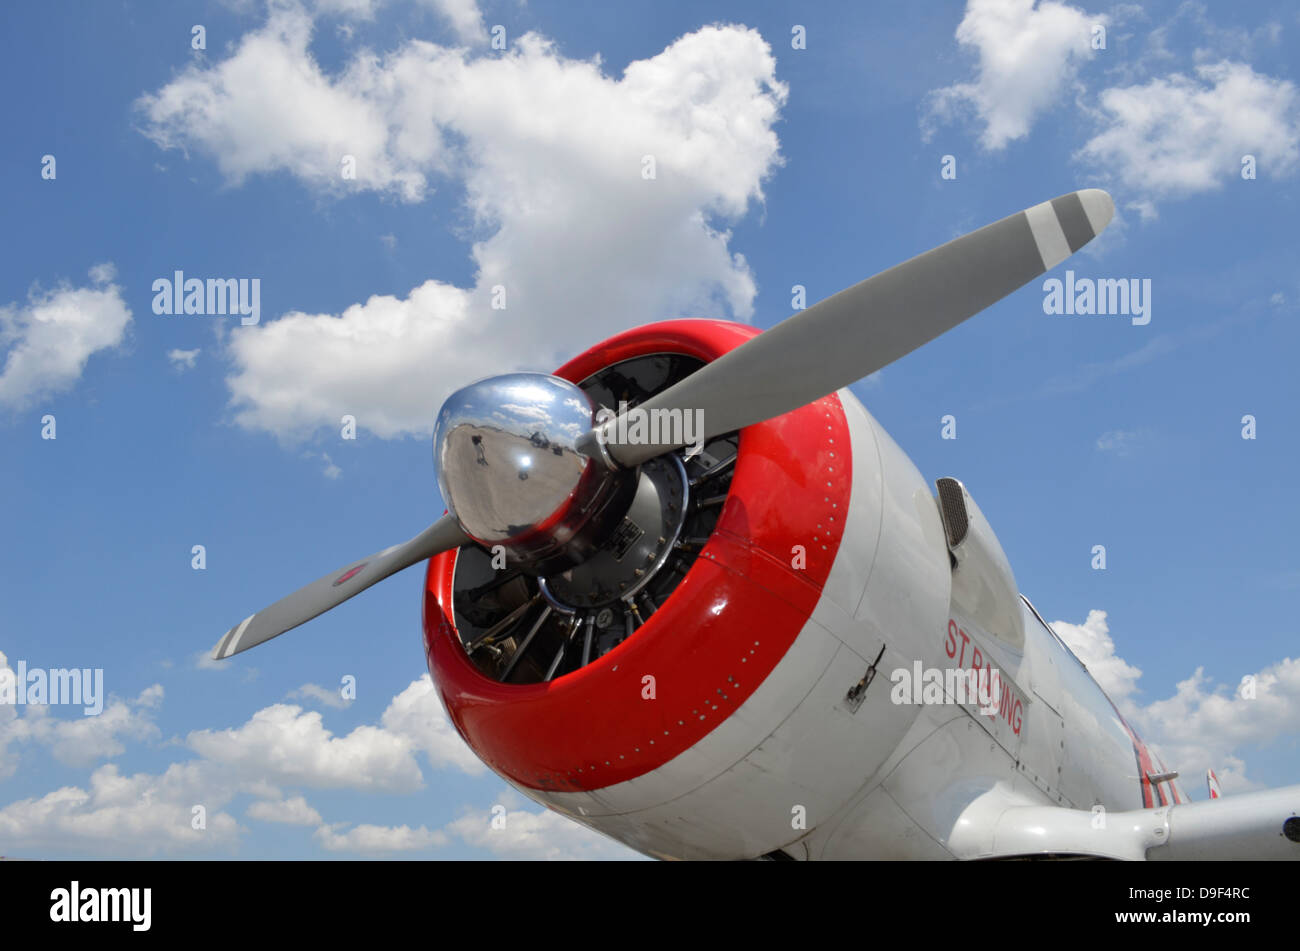 Close-up view of the propeller on a North American Aviation AT-6 Texan warbird. - Stock Image